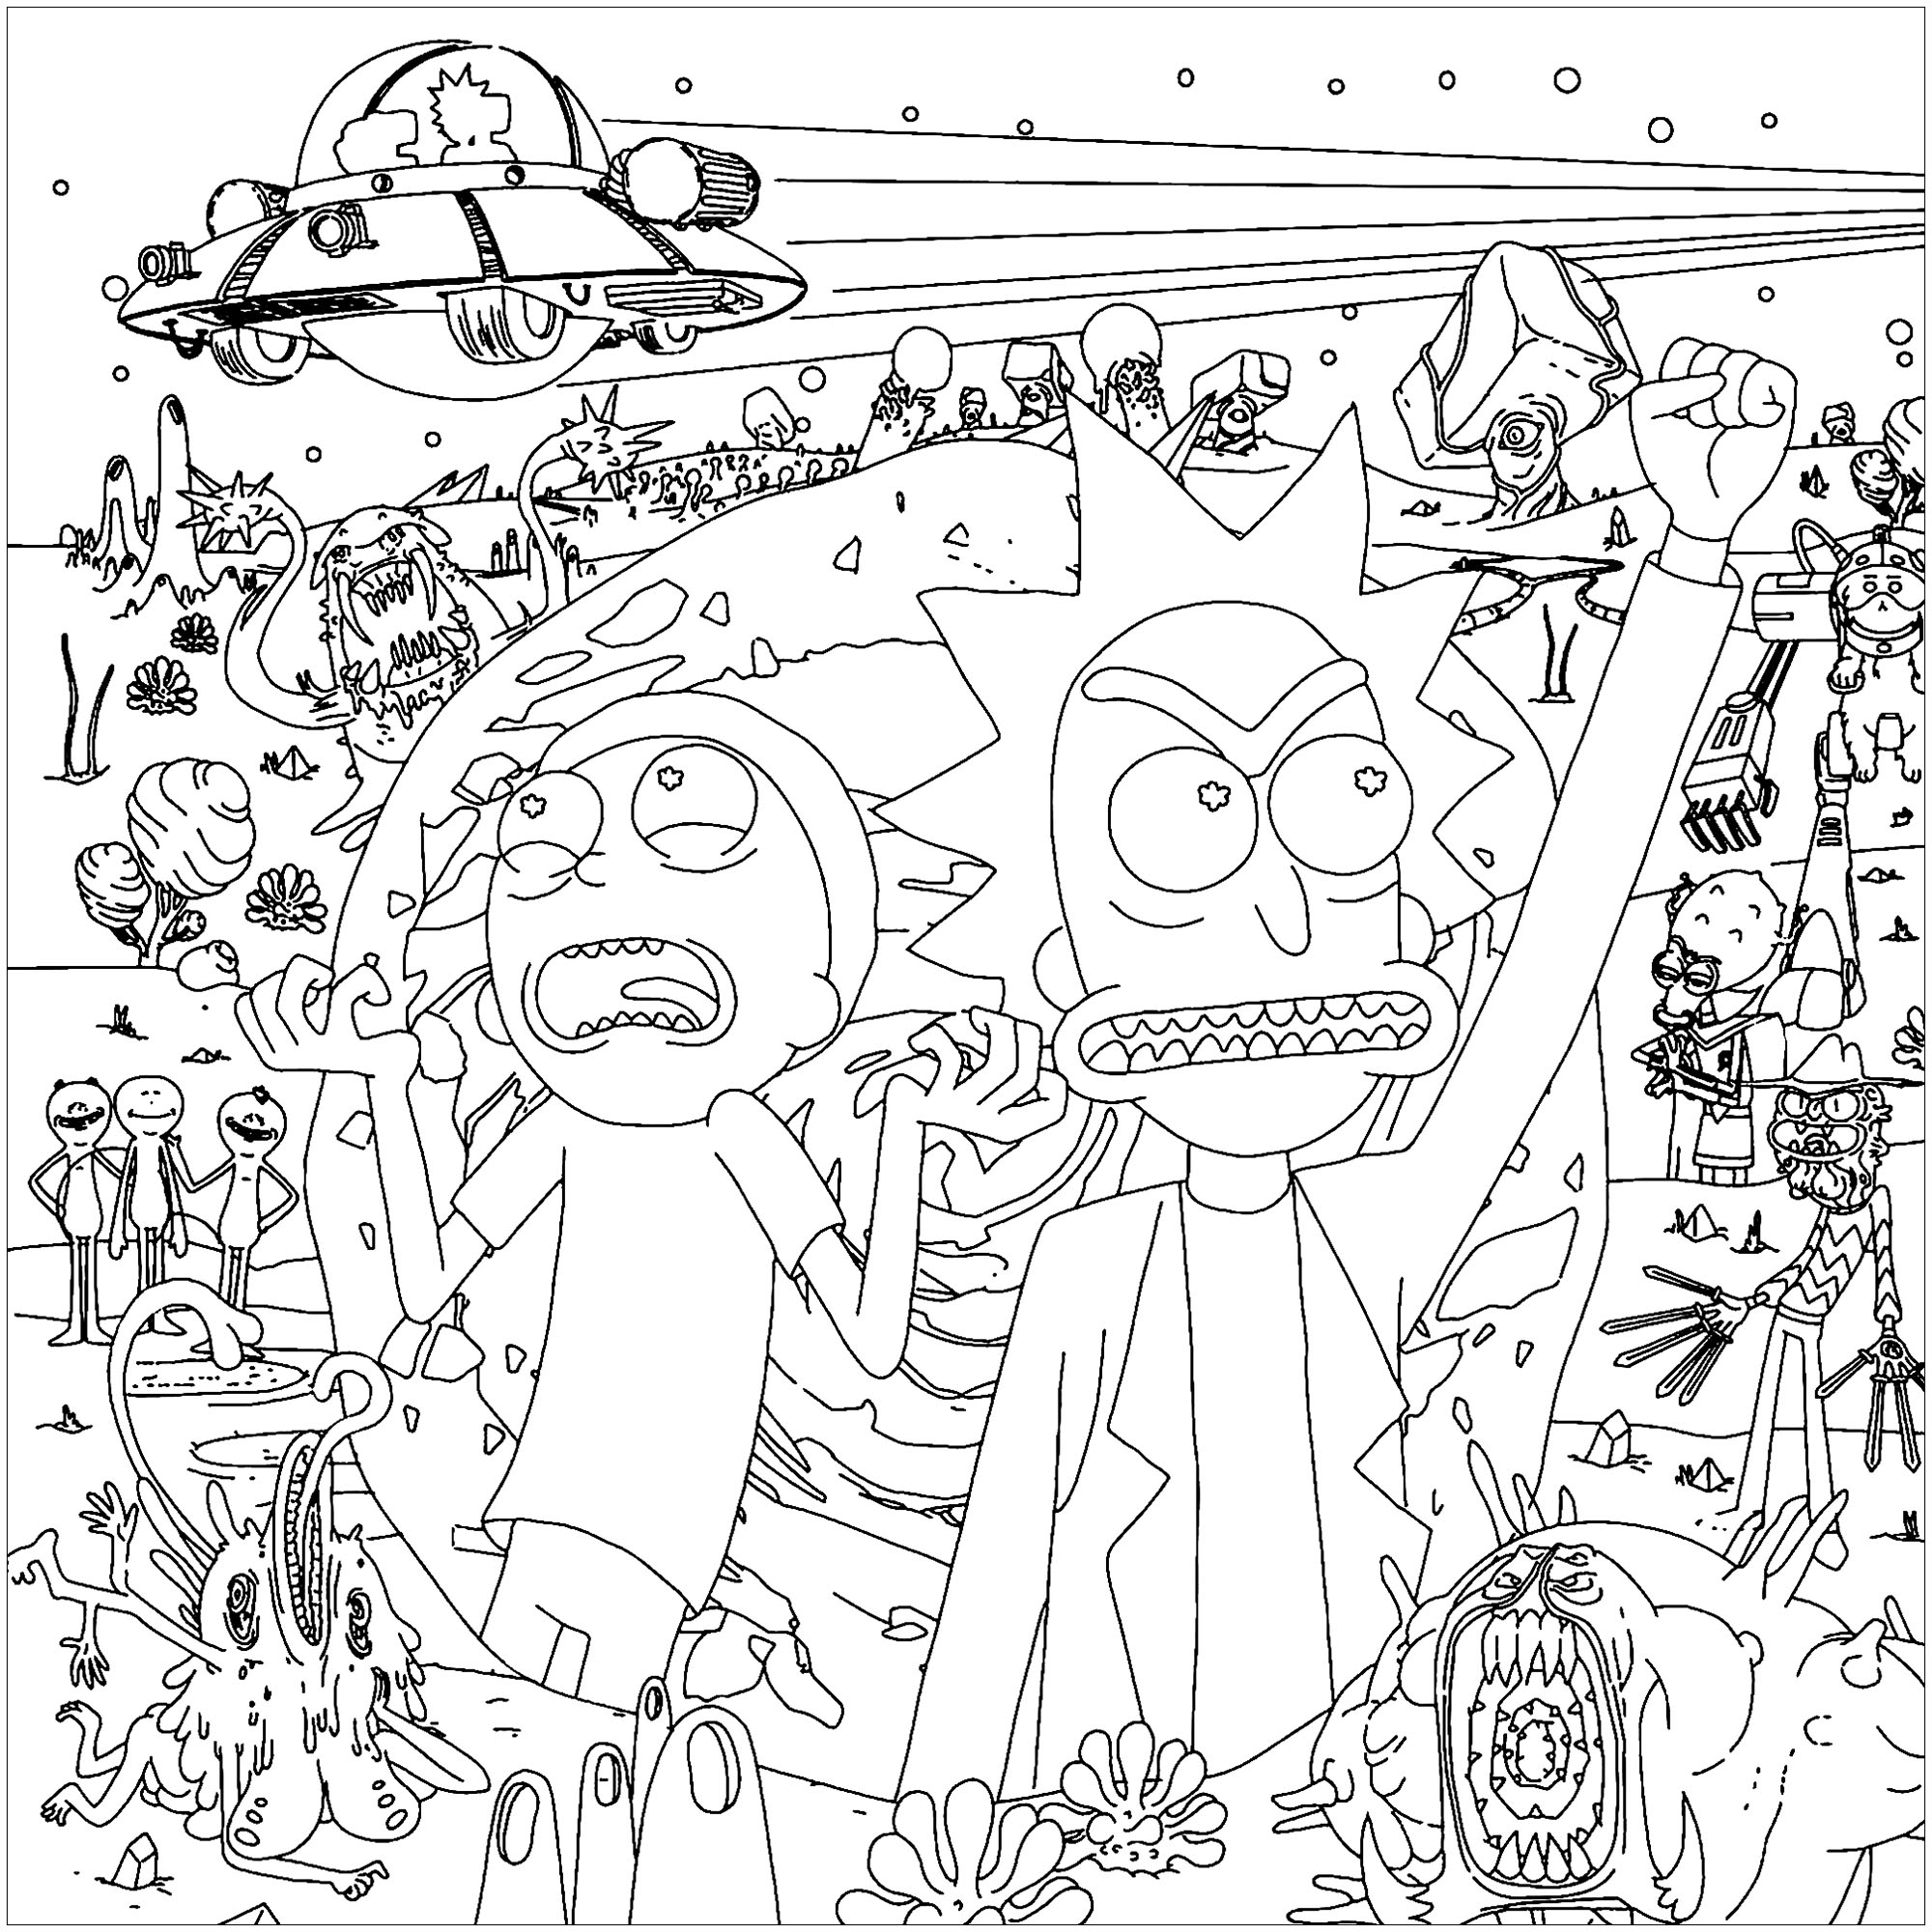 Rick and Morty Coloring Pages - Best Coloring Pages For Kids